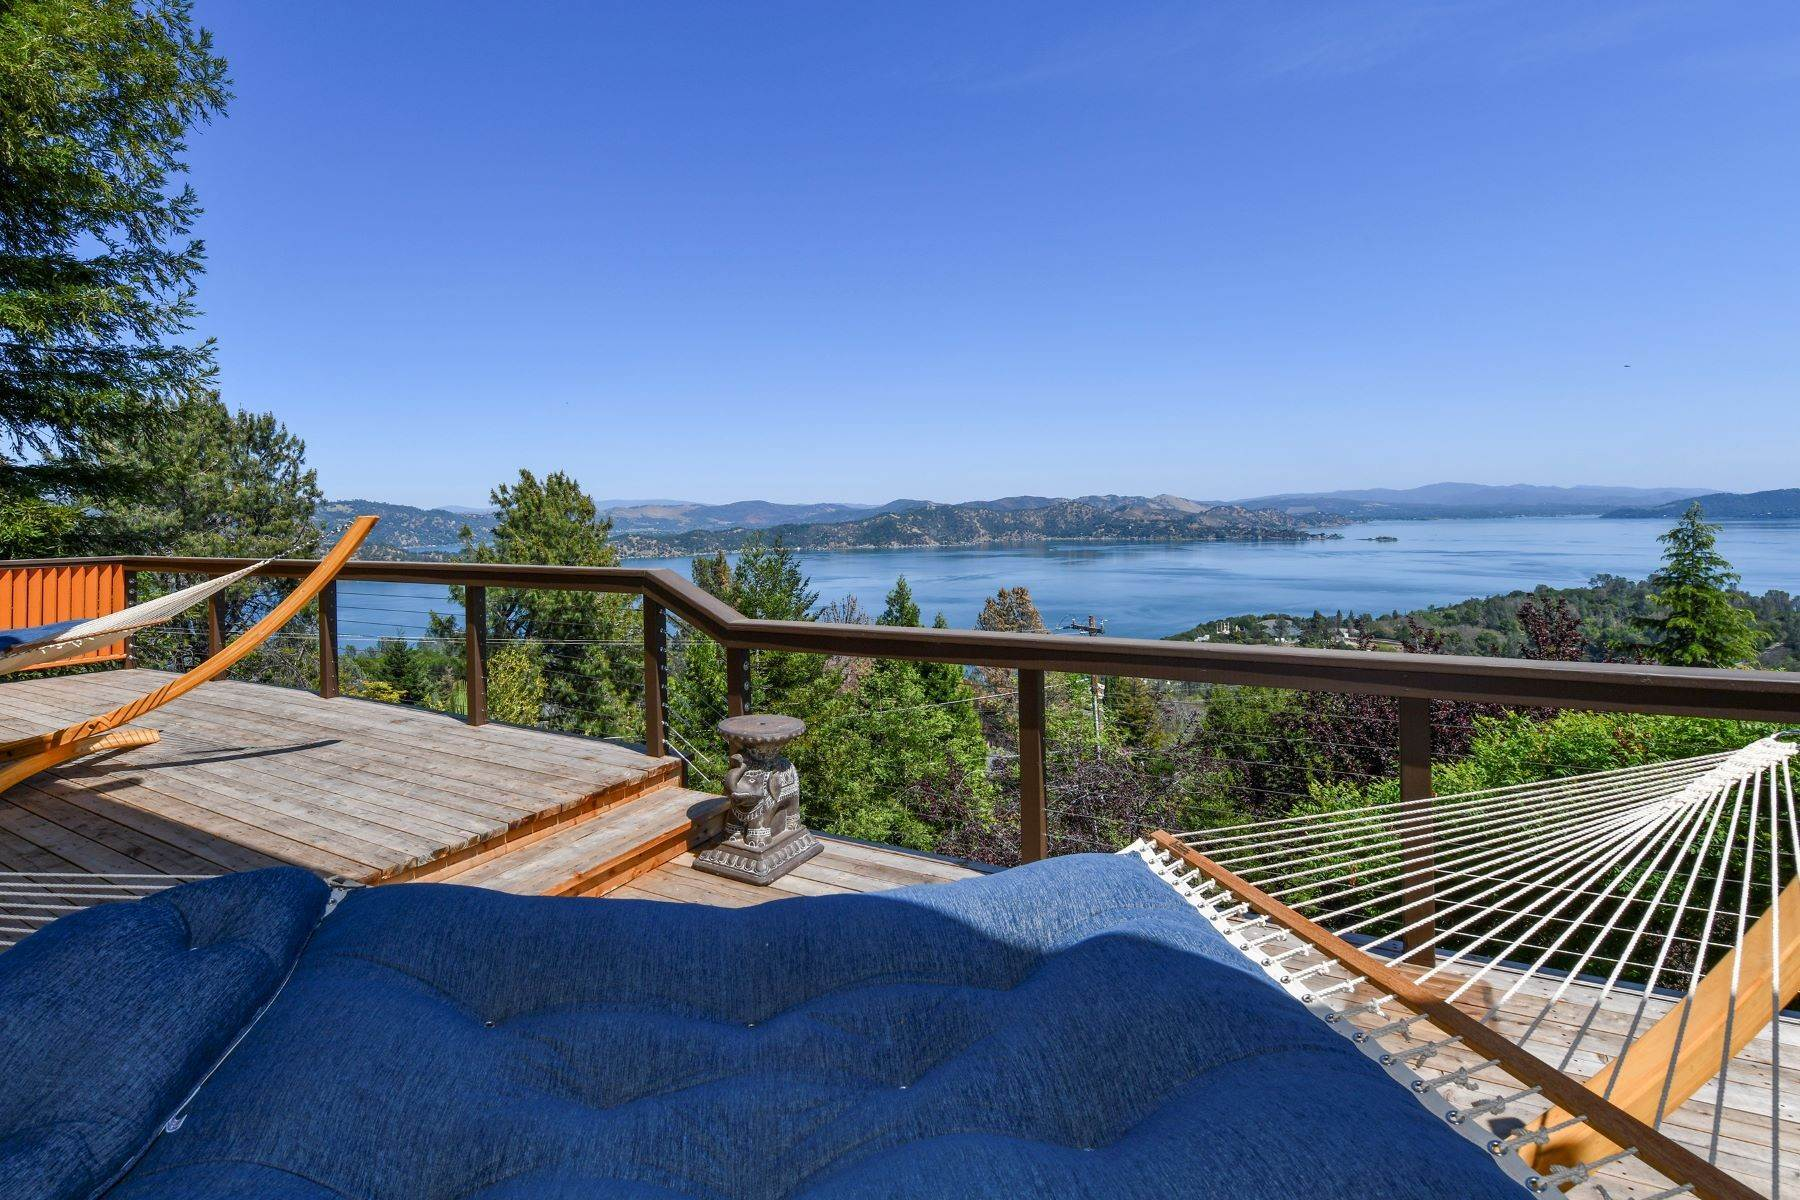 Property for Sale at Crown Jewel in Riviera West 3715 Wood Plaza Way Kelseyville, California 95451 United States